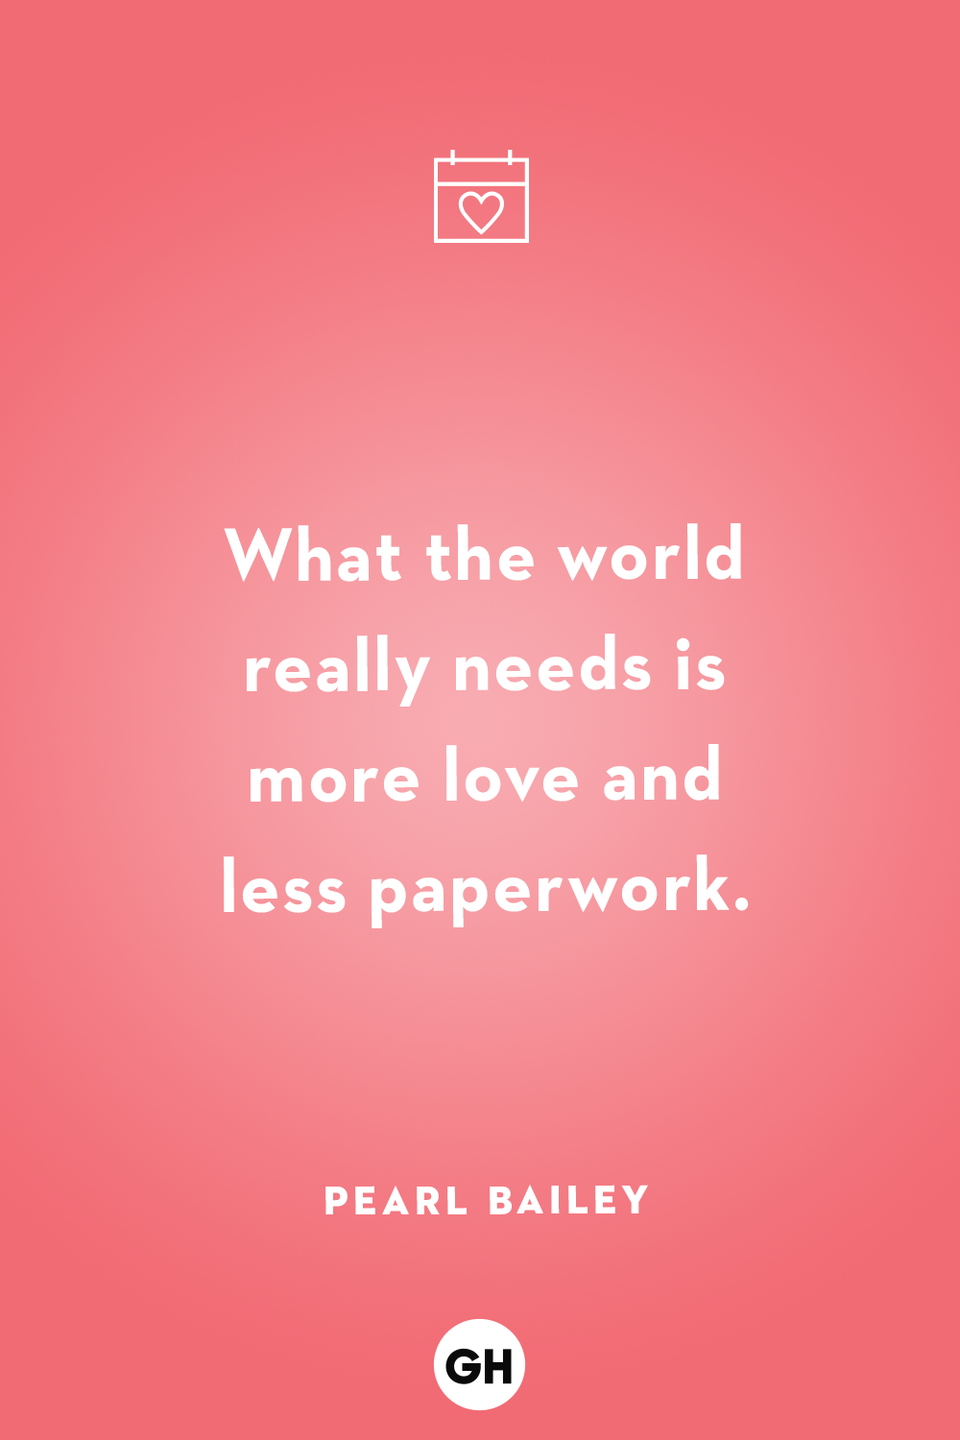 <p>What the world really needs is more love and less paperwork.</p>